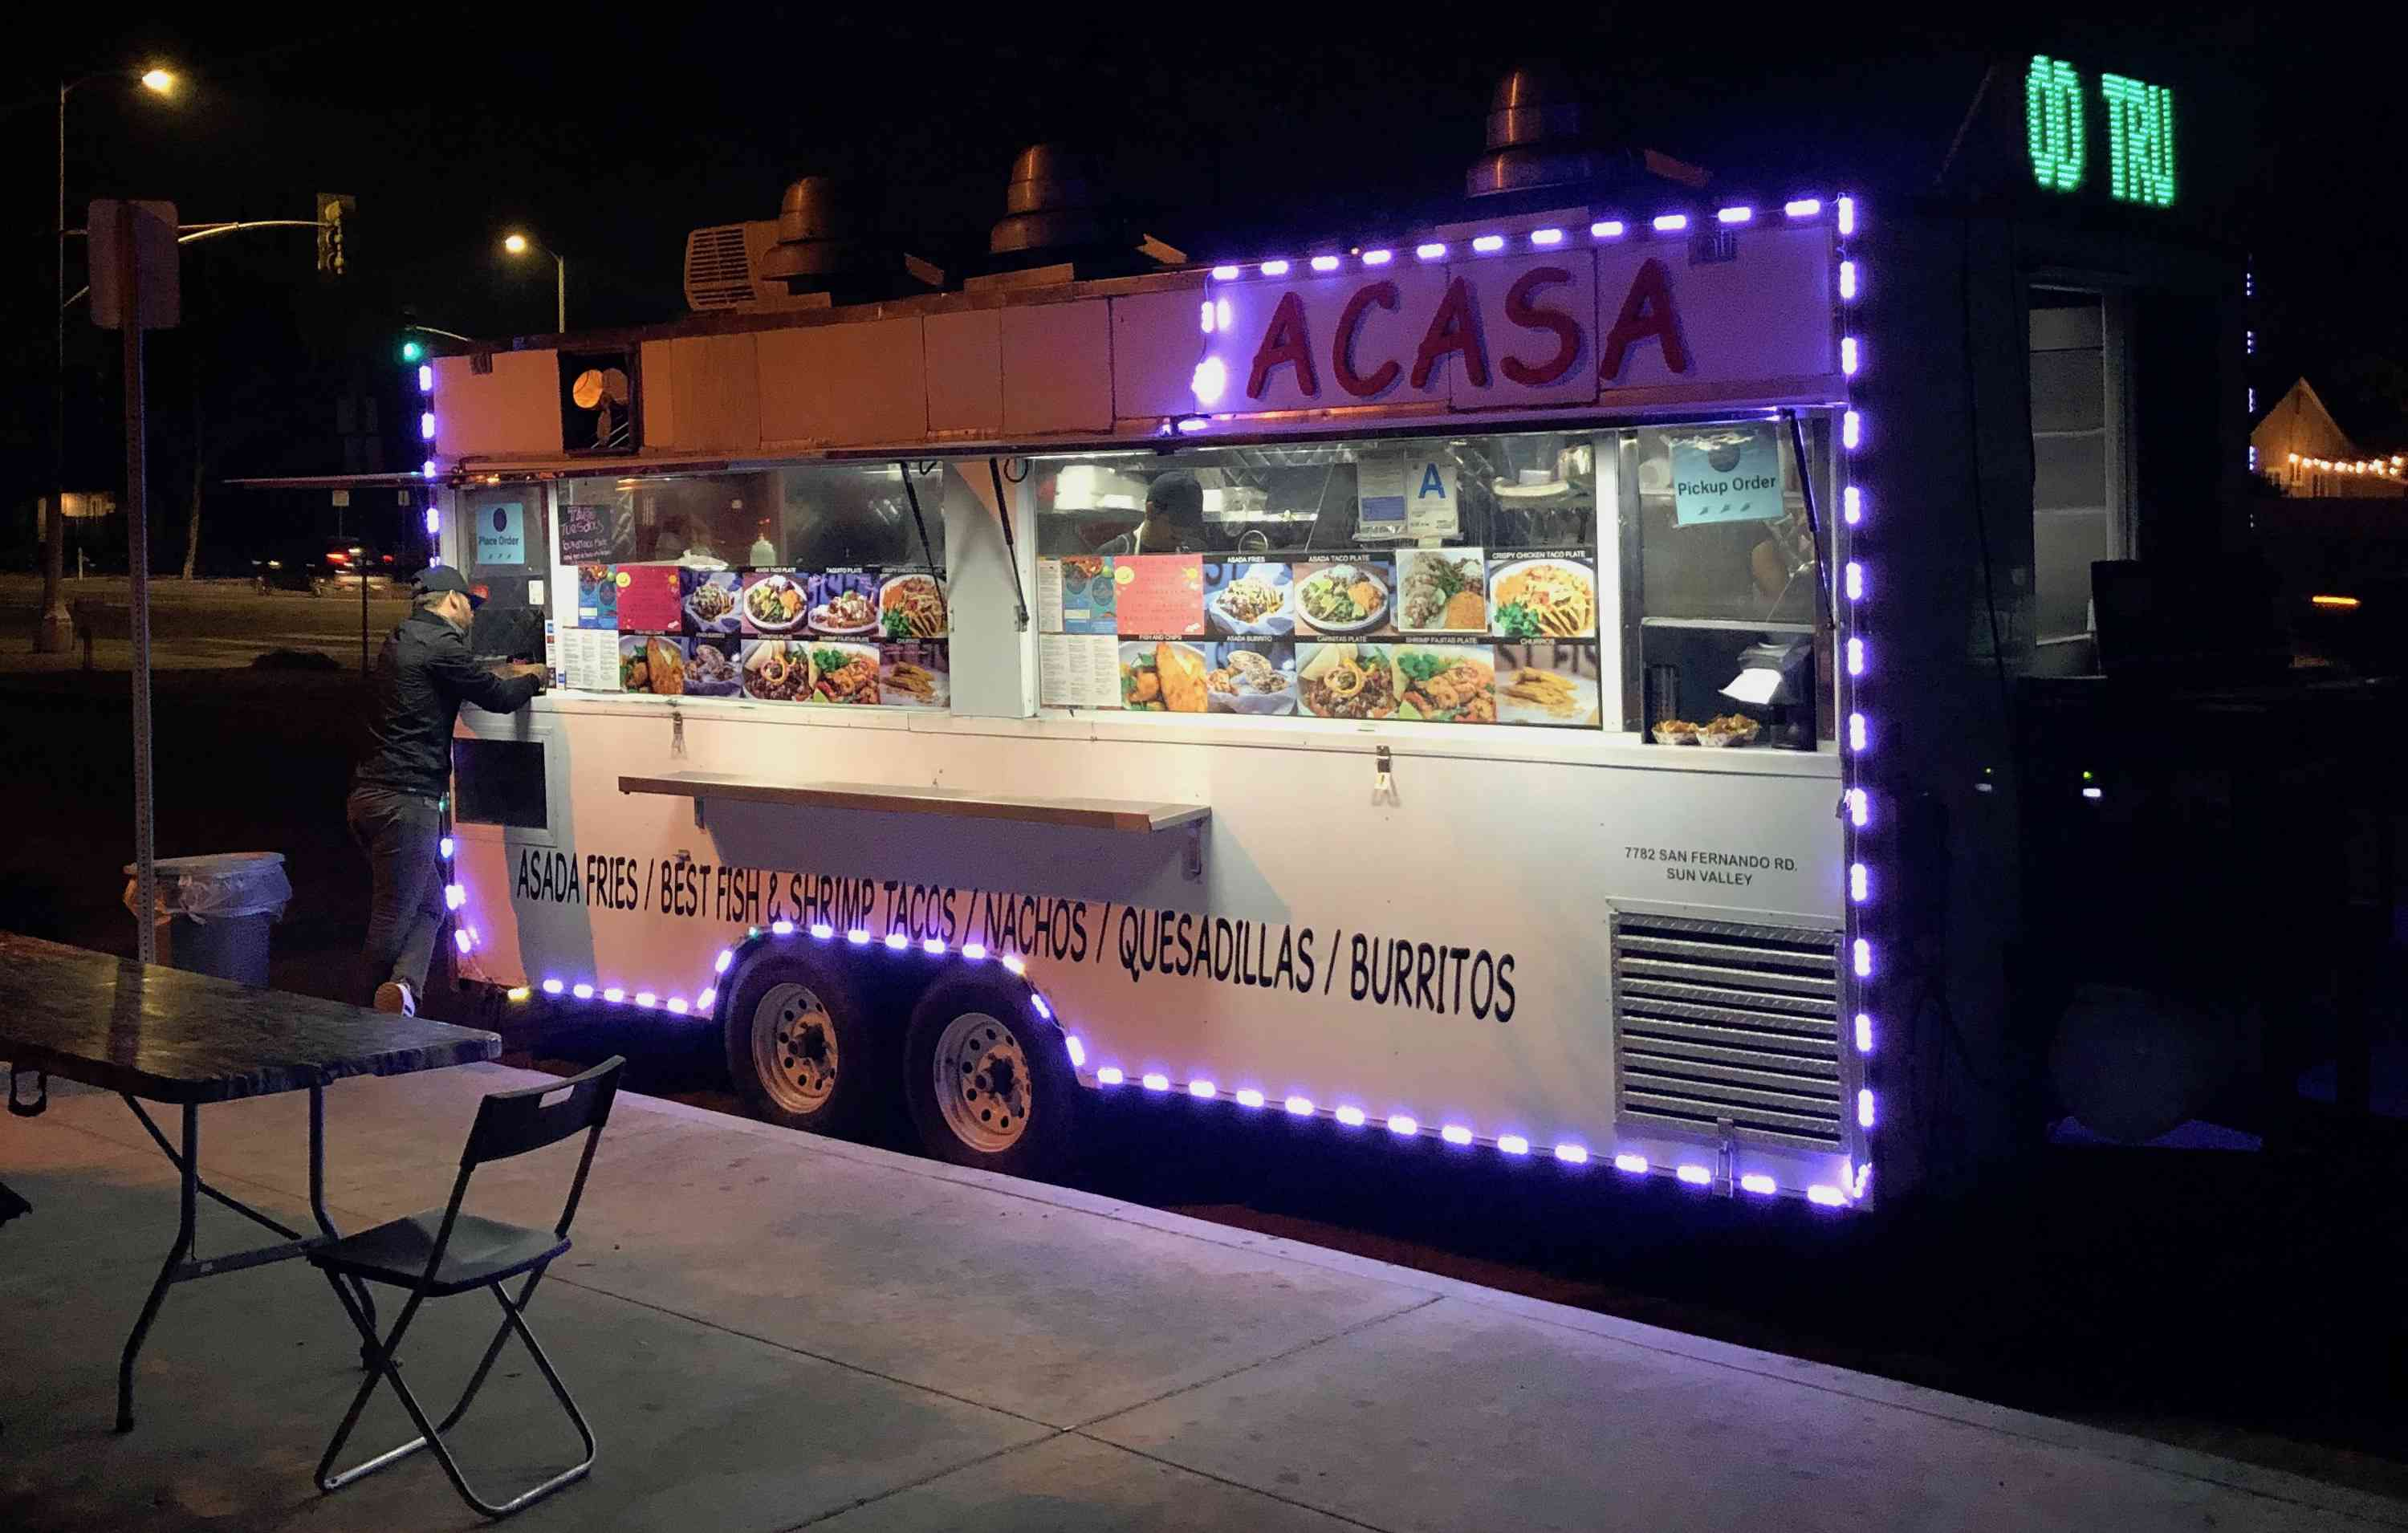 Acasa taco Truck at night with a person ordering from the window